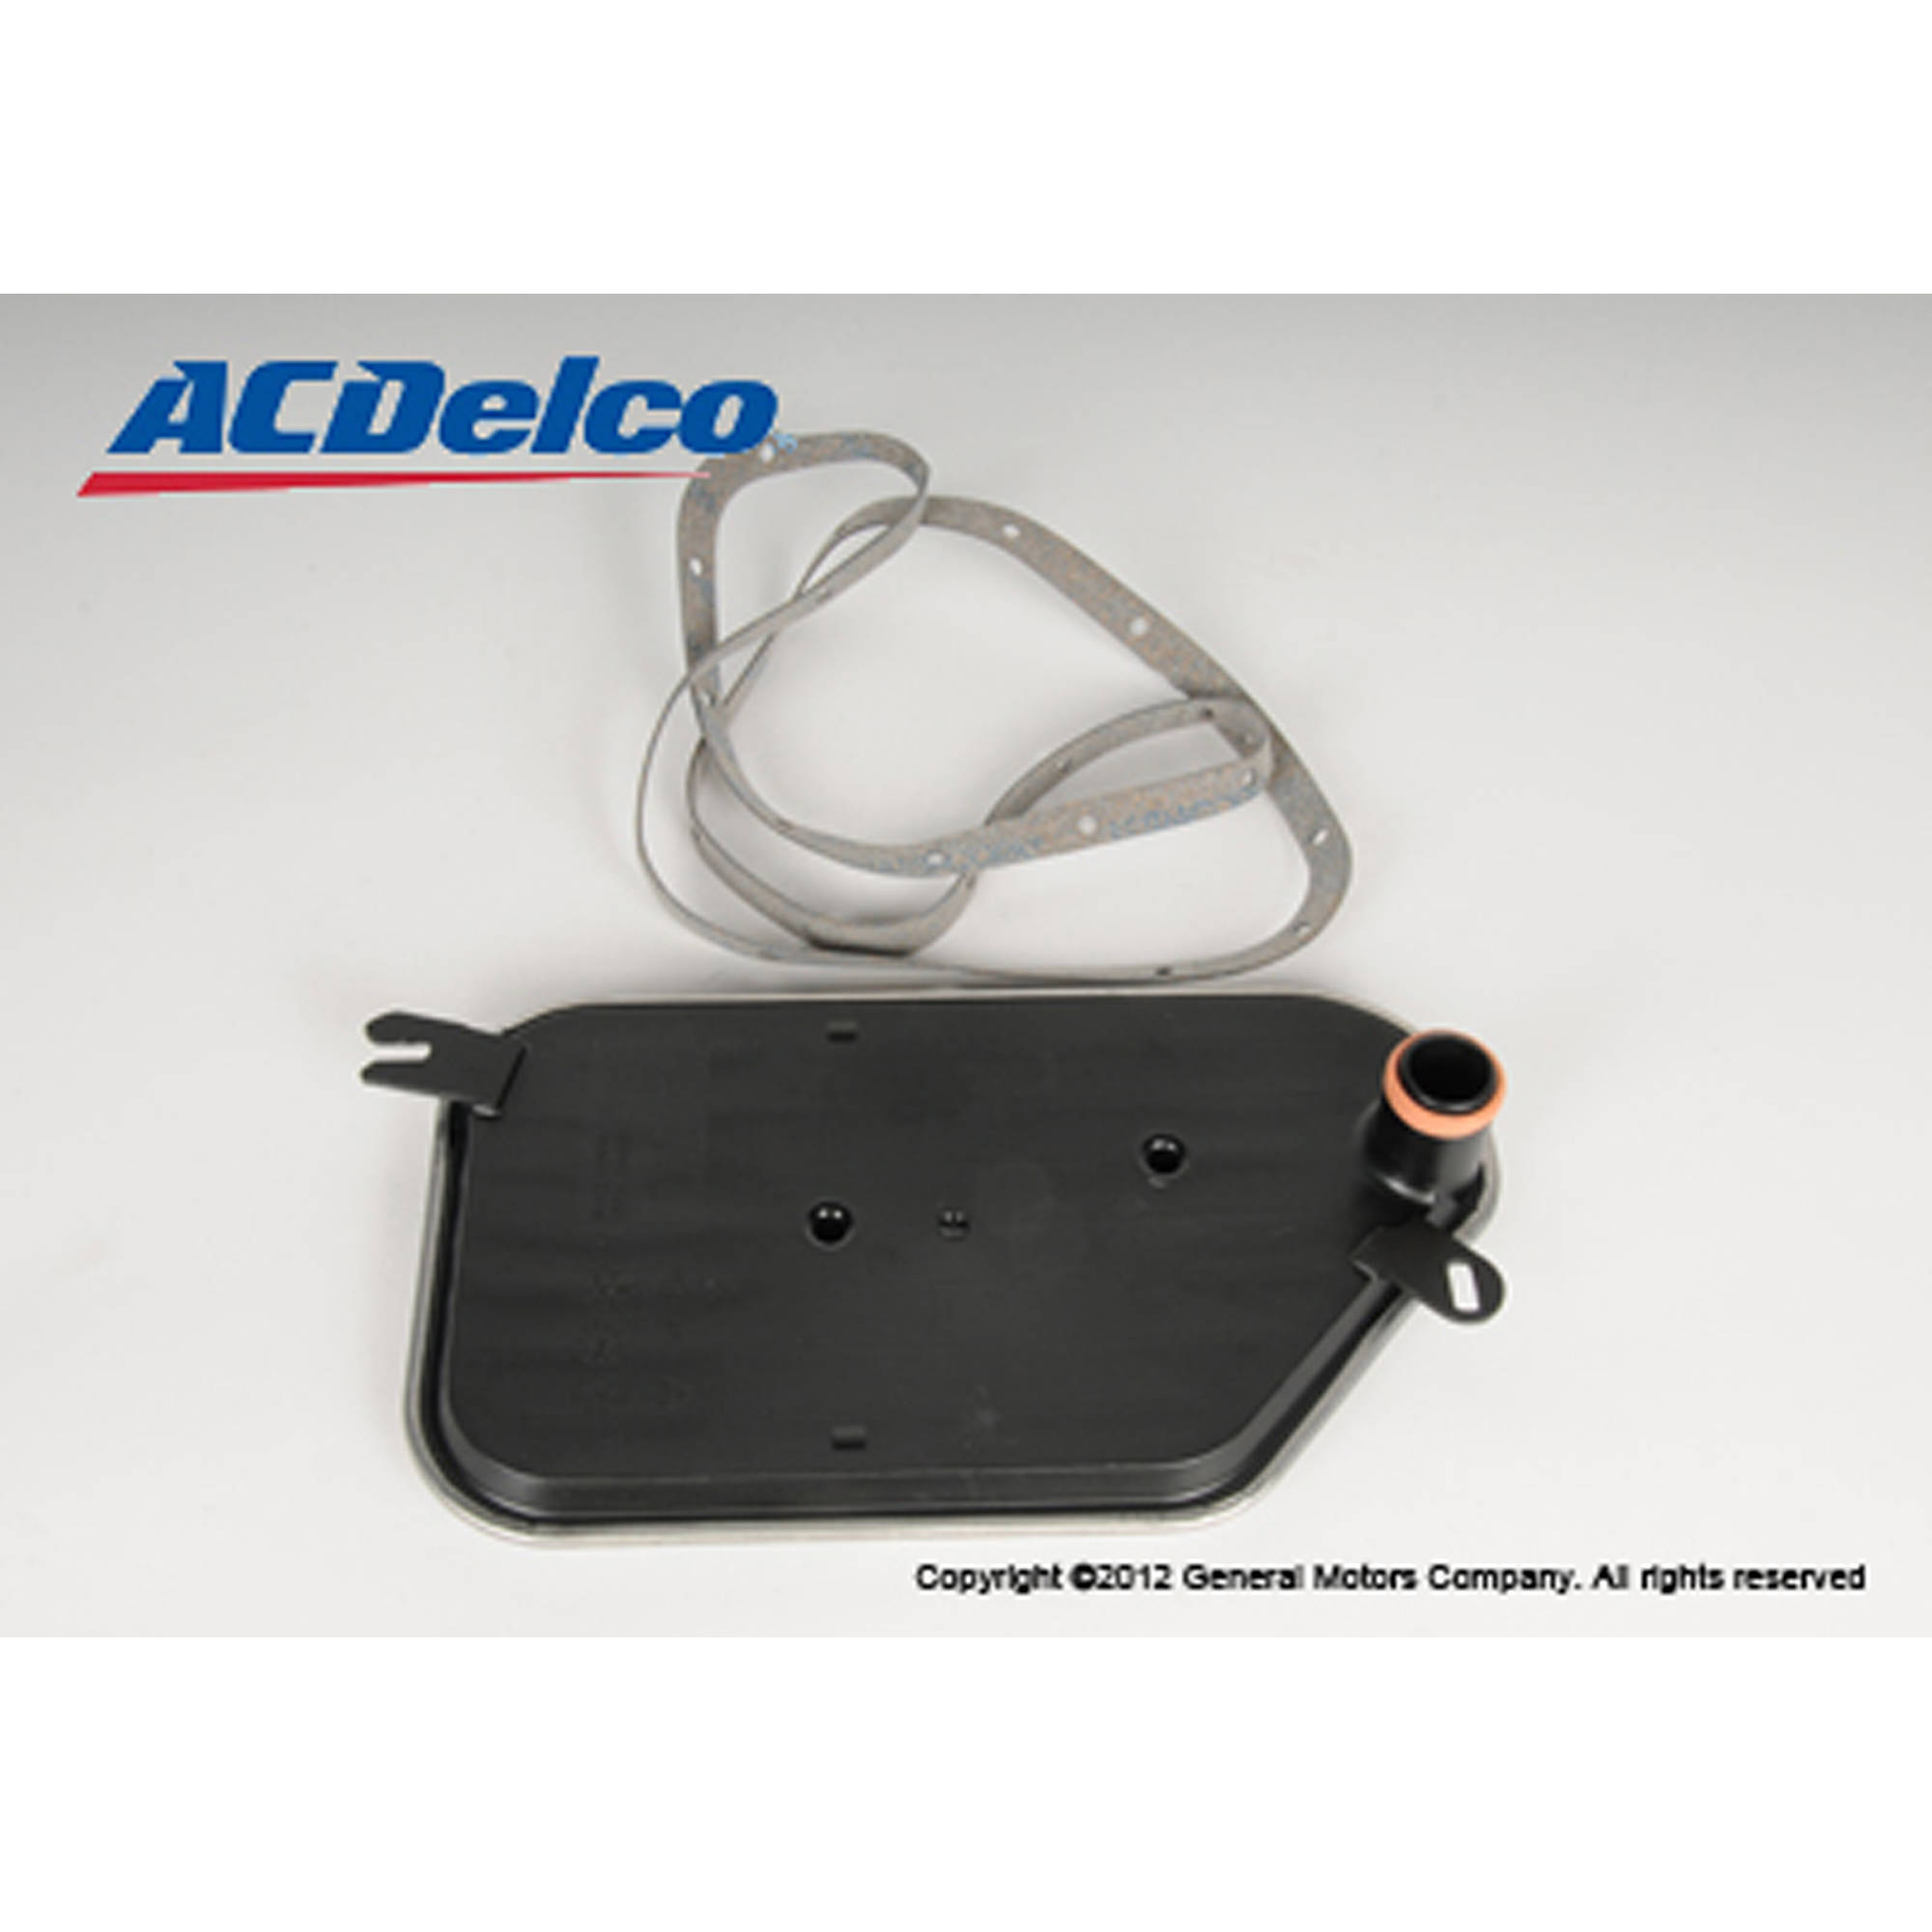 Automatic Transmission Filter, AC Delco TF331